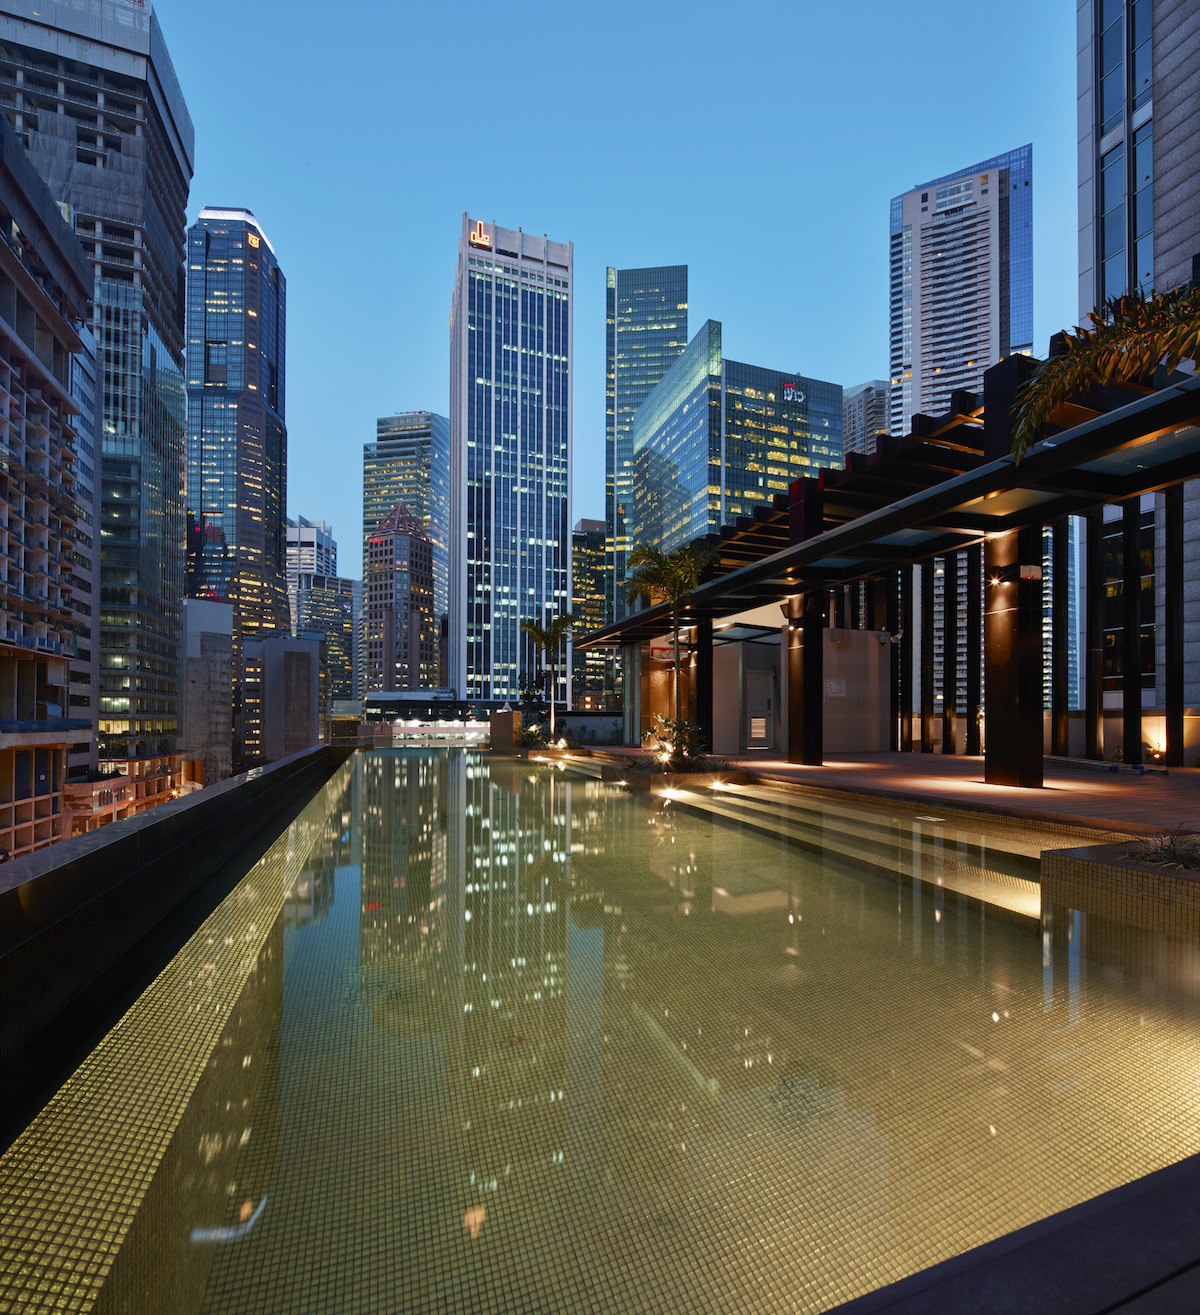 HI-SO Rooftop Pool & Bar with our signature Golden-tiled pool